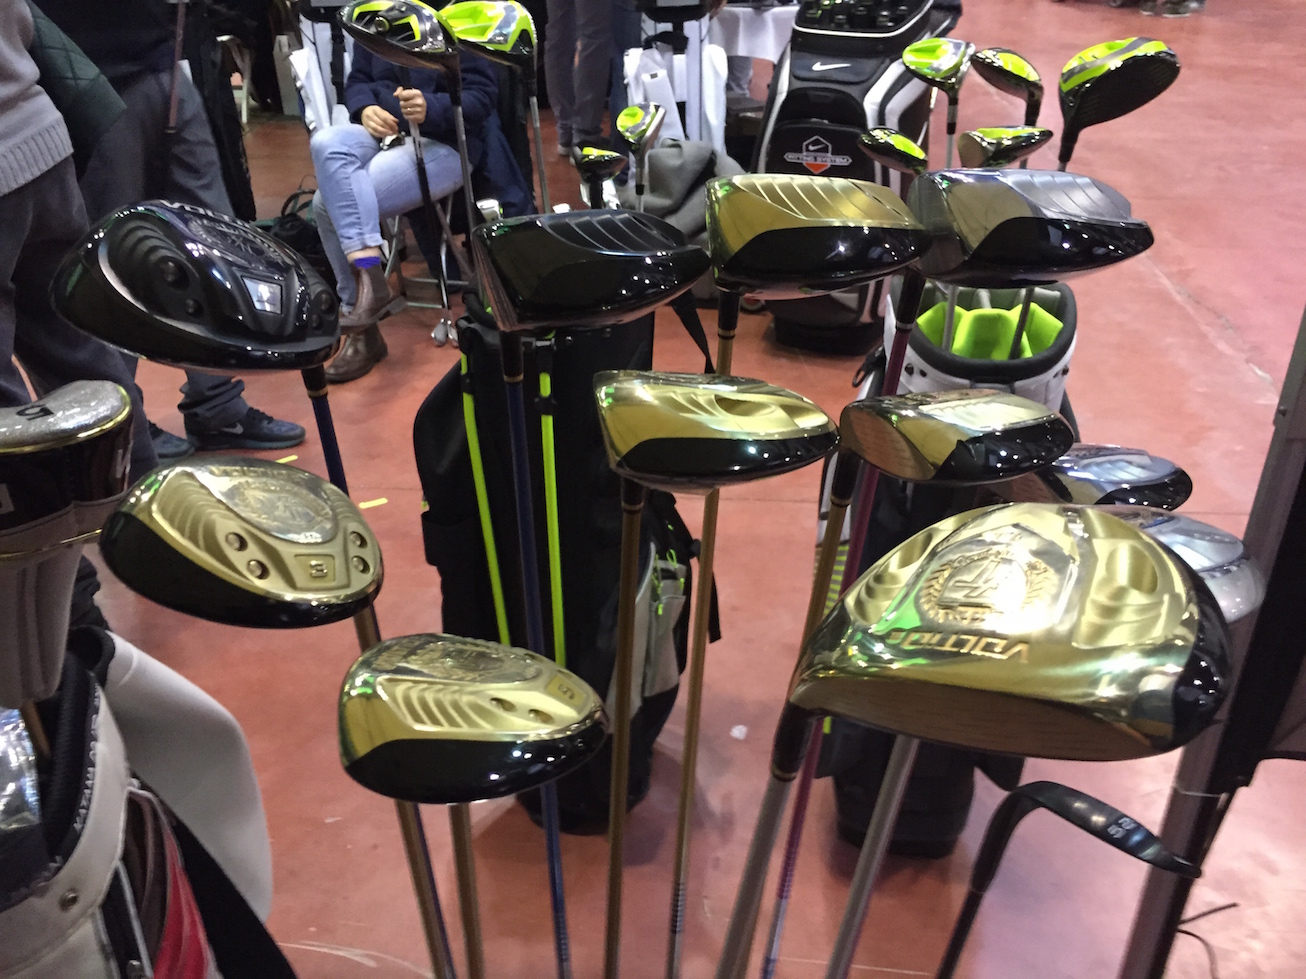 Fiera del Golf Parma 2015 le foto ed i video di Italian Golf Show e le prove dei materiali21 - Fiera del Golf Parma: le foto ed i video di Italian Golf Show